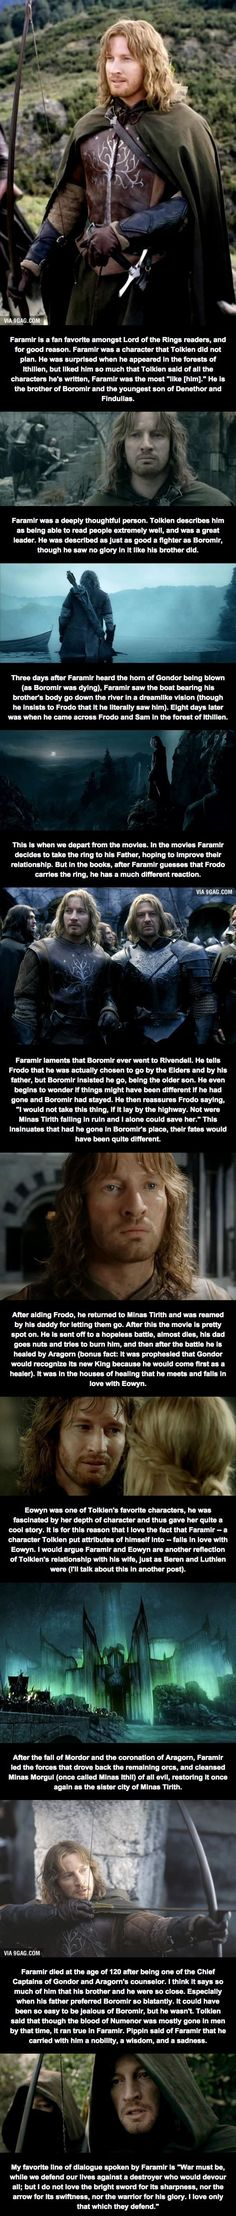 I. Love. Faramir. And it hurt me deeply that he took the Ring to Gondor in the Two Towers movie, which he never would have done.